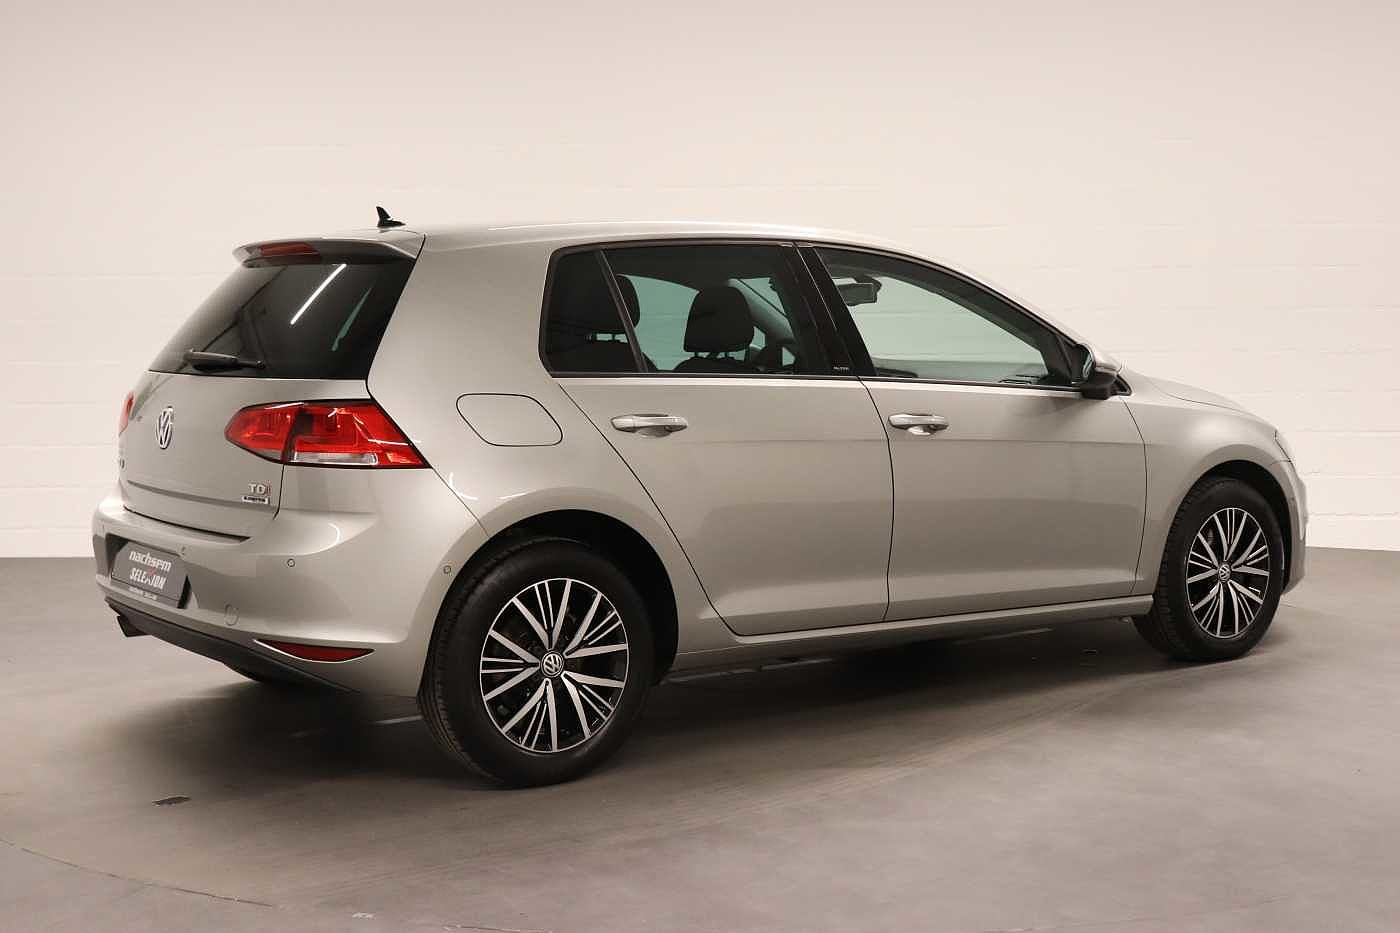 Volkswagen Golf 1.6TDI - photo 8